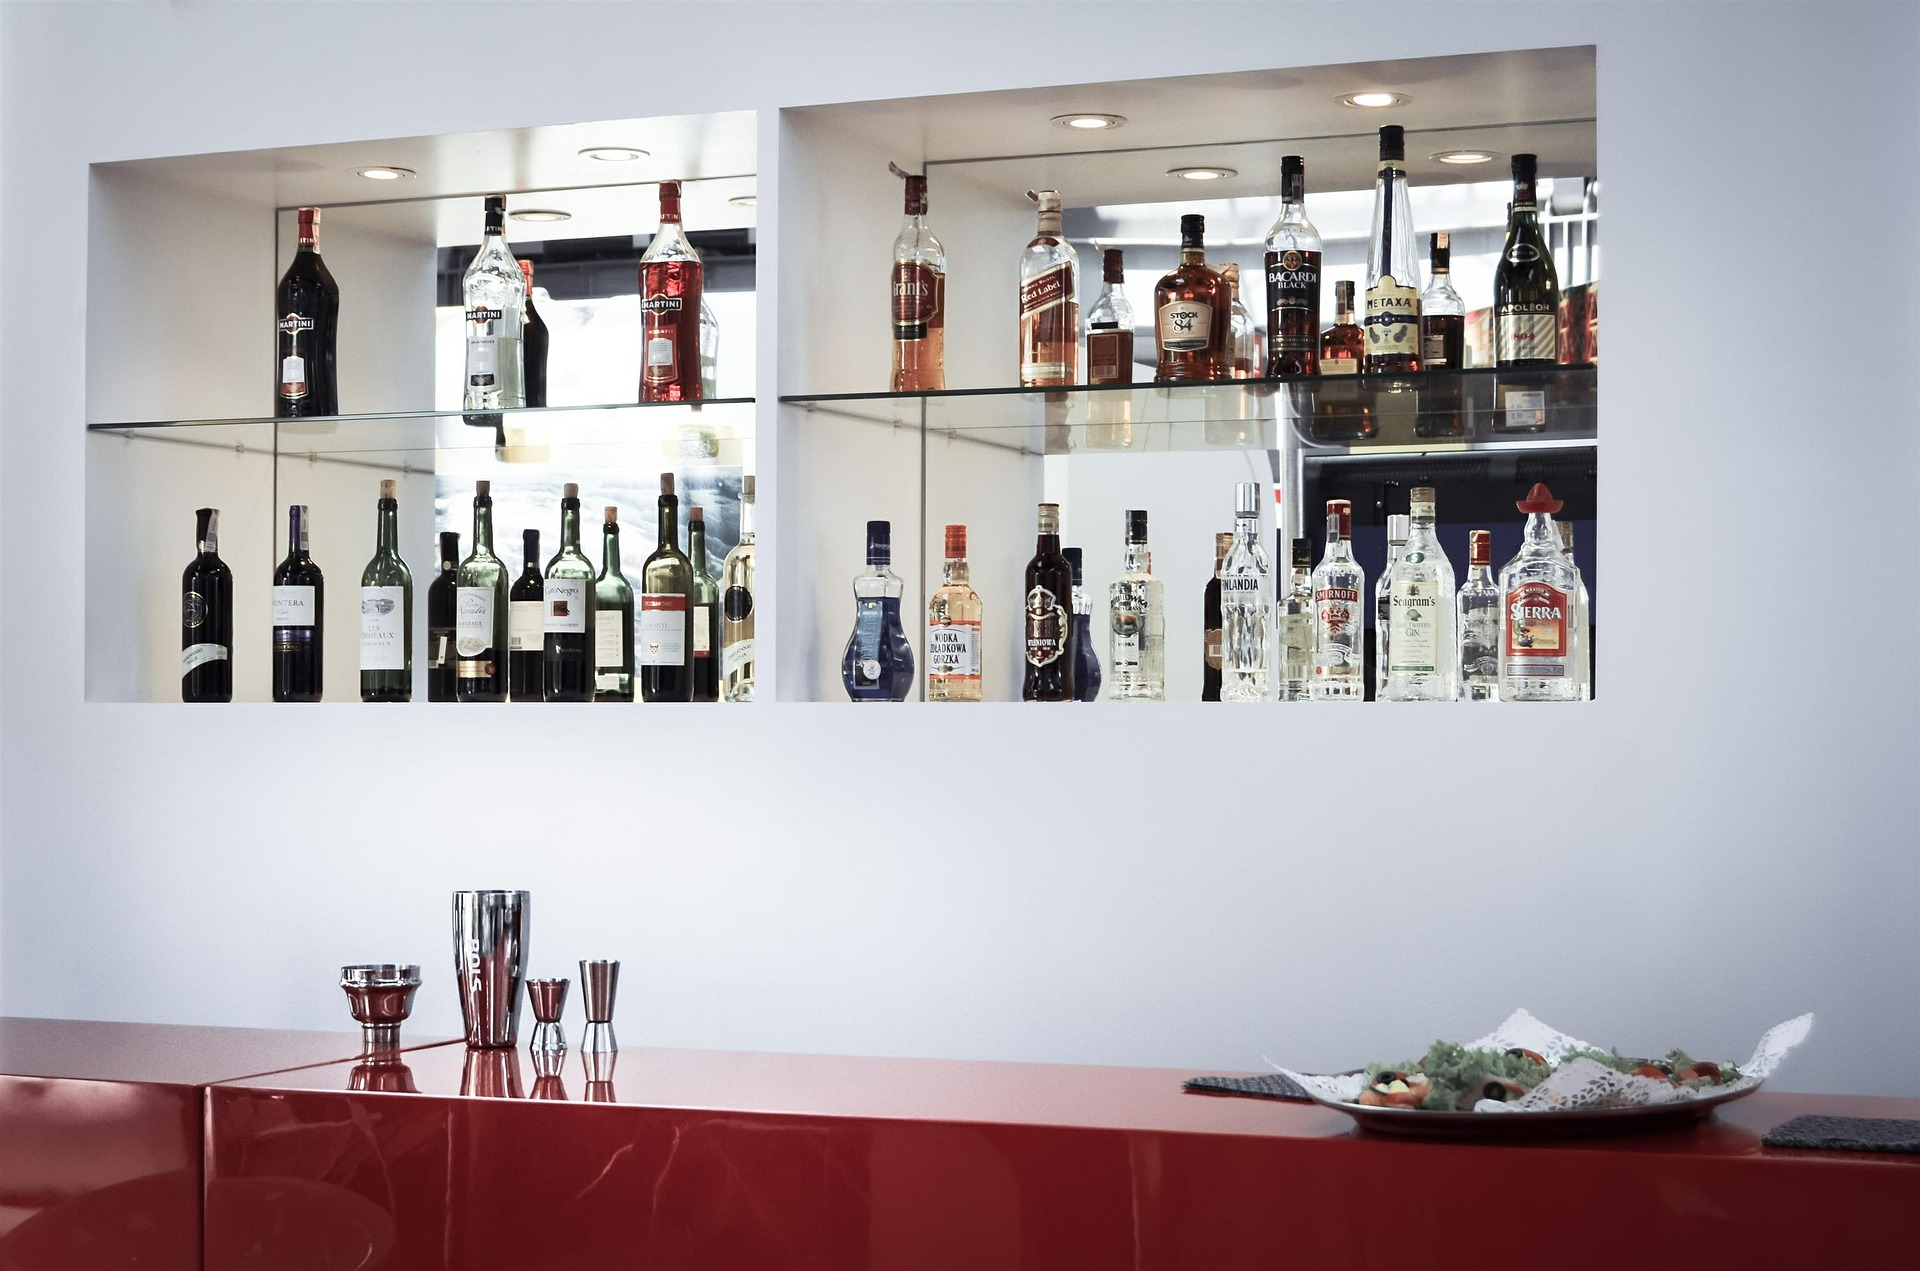 You don't need many ingredients to enjoy a quality mixed drink at your home cocktail bar.